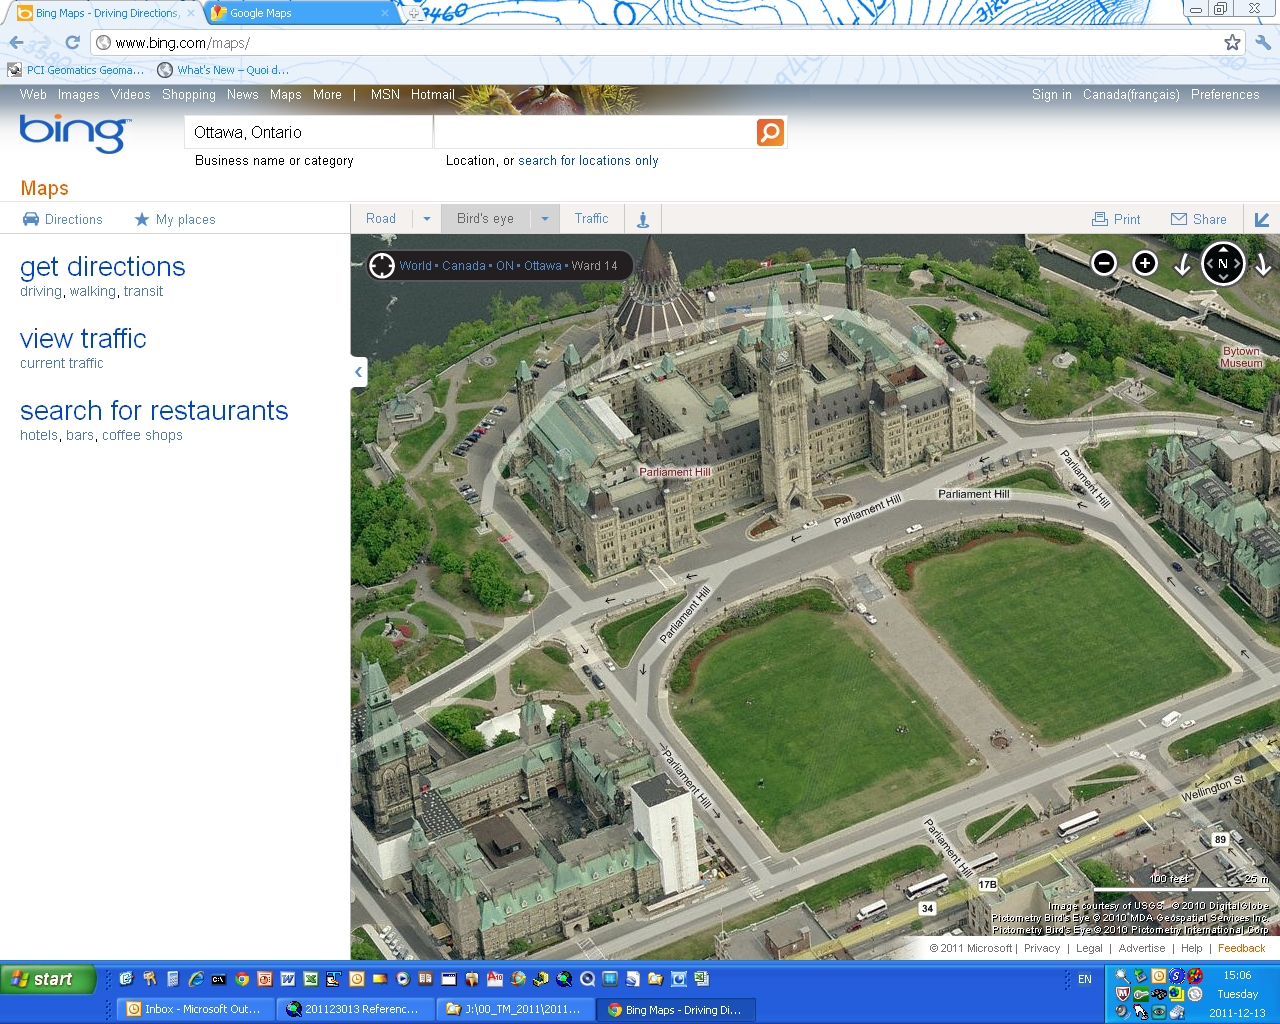 Ottawa - Ontario - Bing Birds Eye View 1